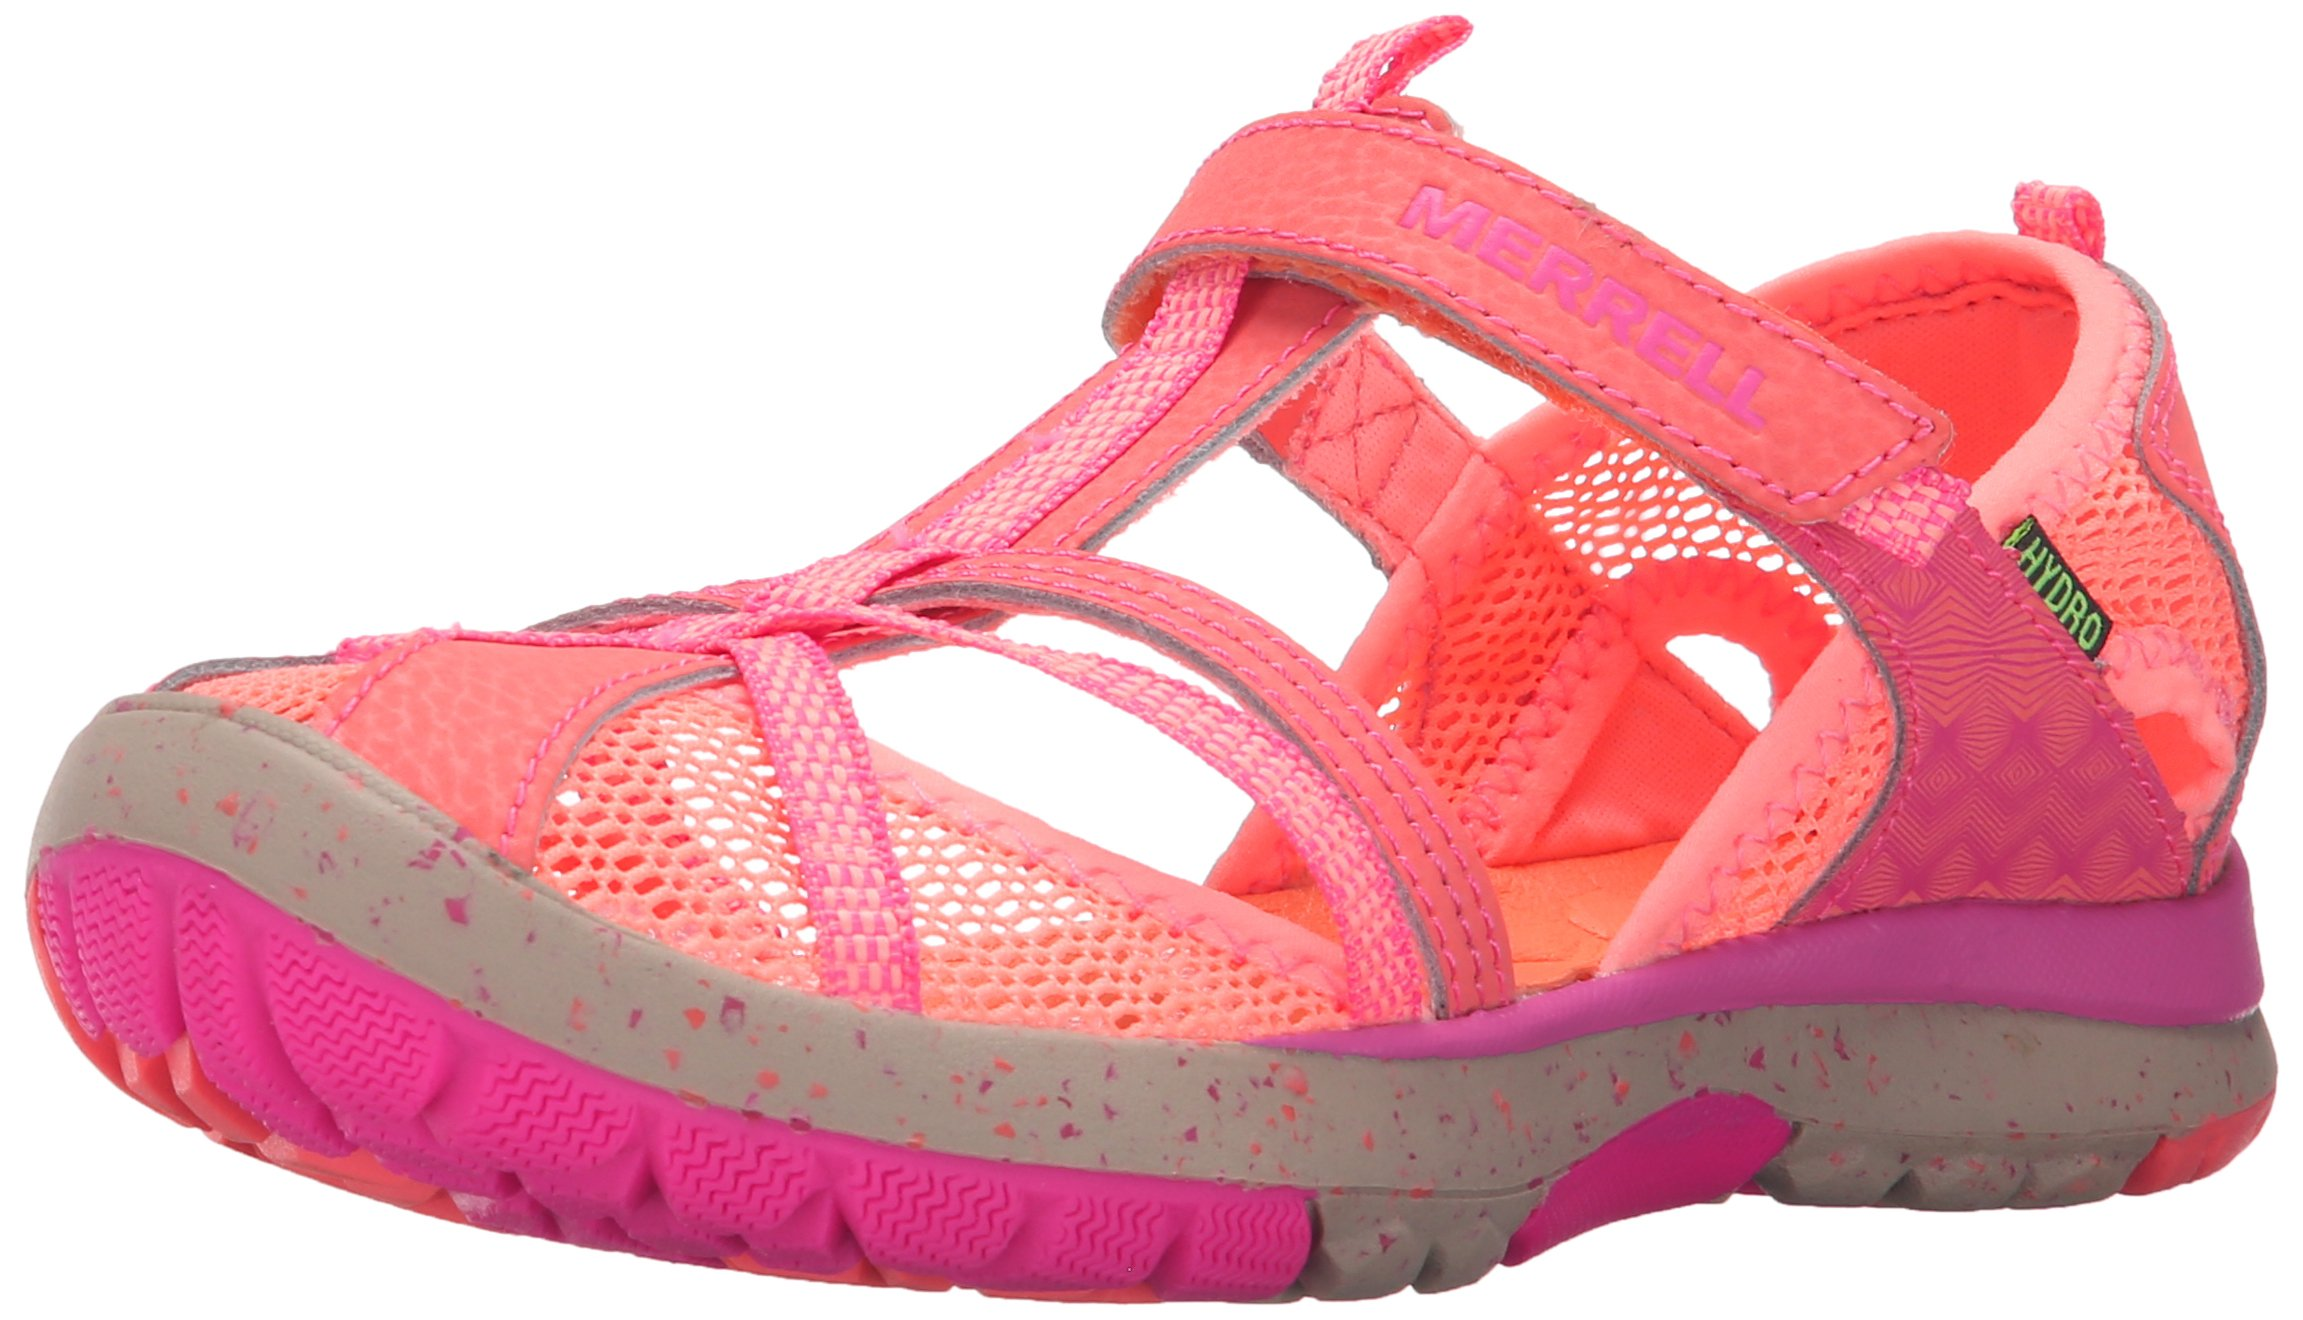 Merrell Hydro Monarch Water Sandal (Toddler/Little Kid/Big Kid), Coral, 11 W US Little Kid